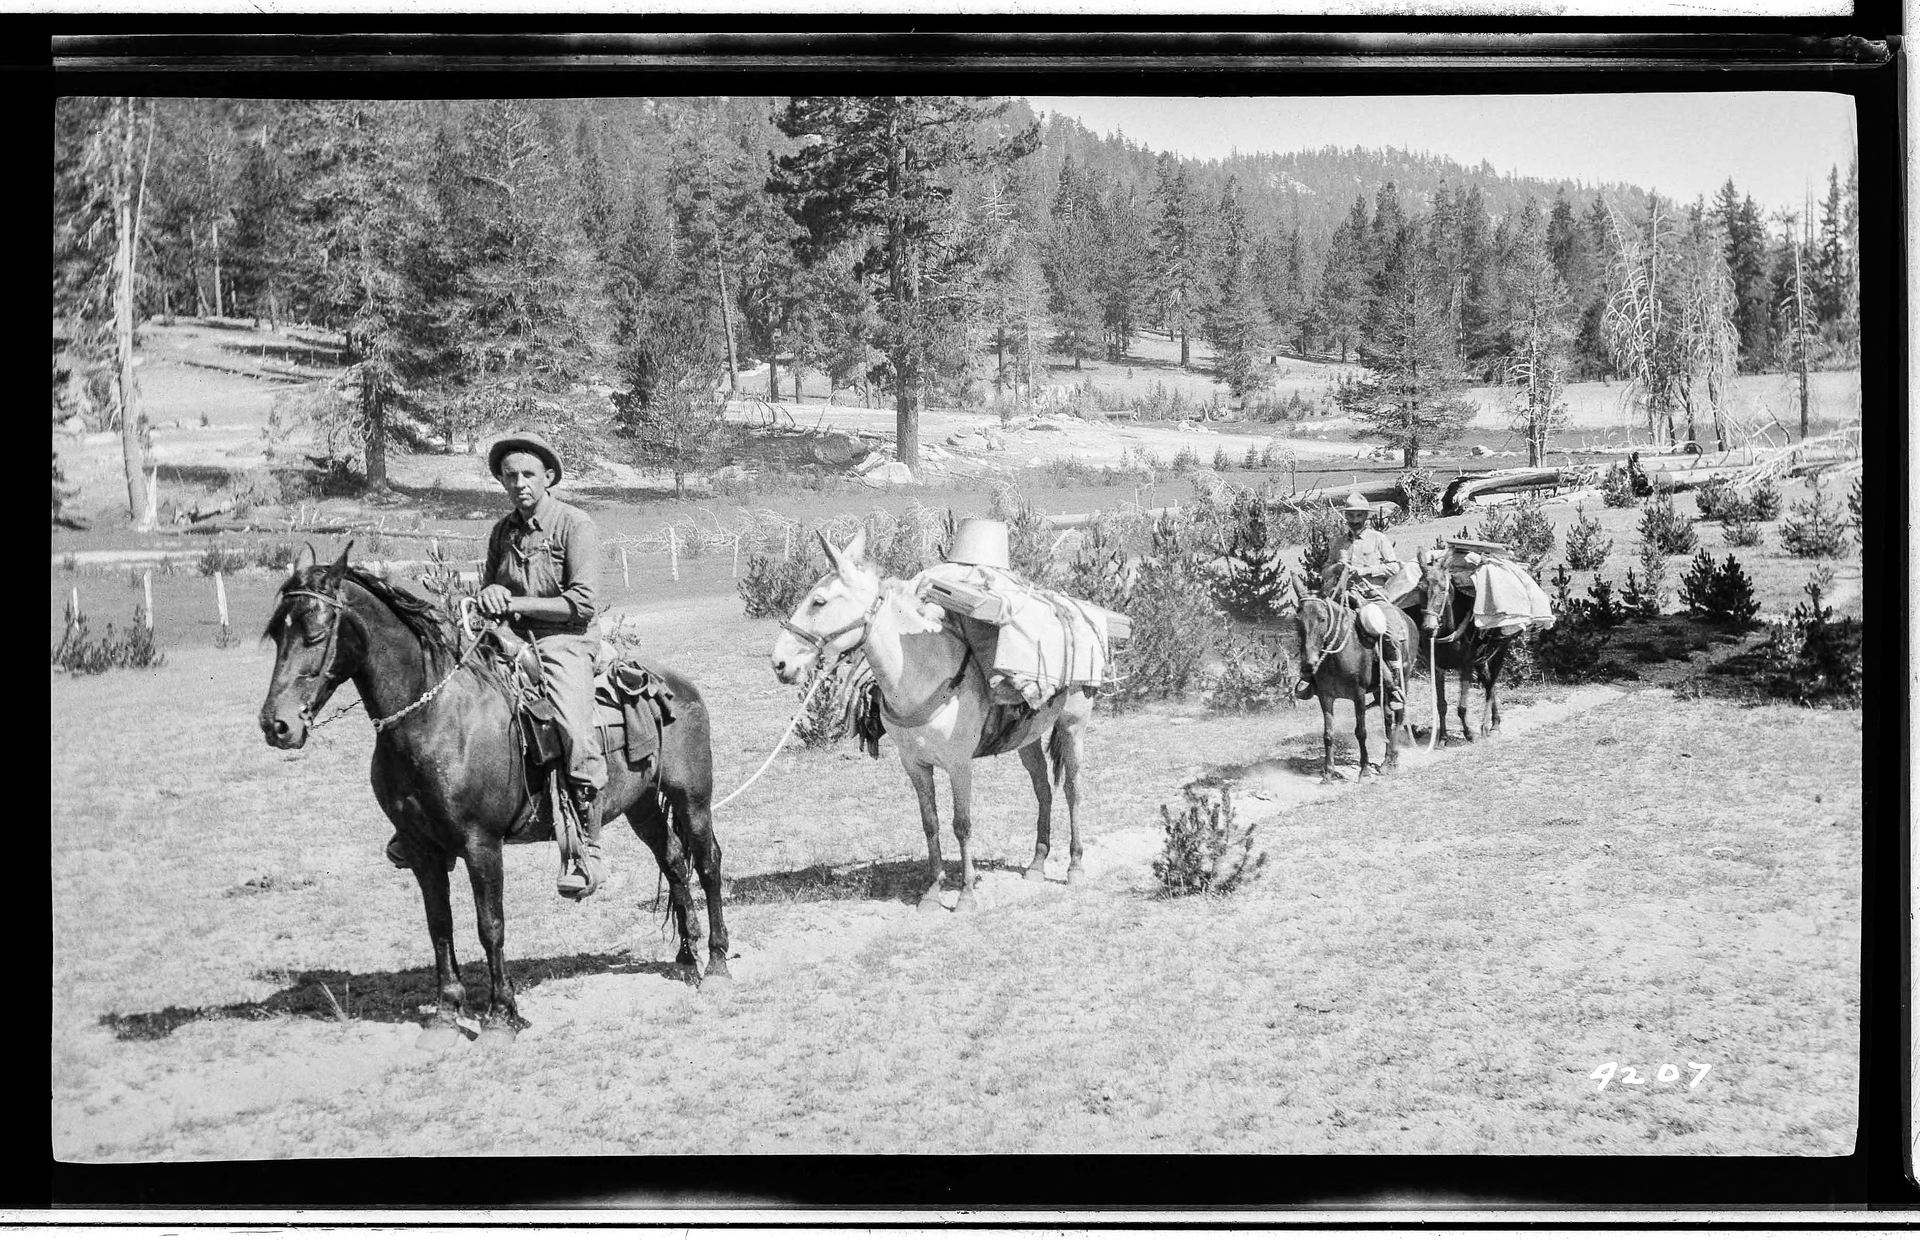 This historic photo shows Edison using horses and pack mules for a survey pack train in 1917.